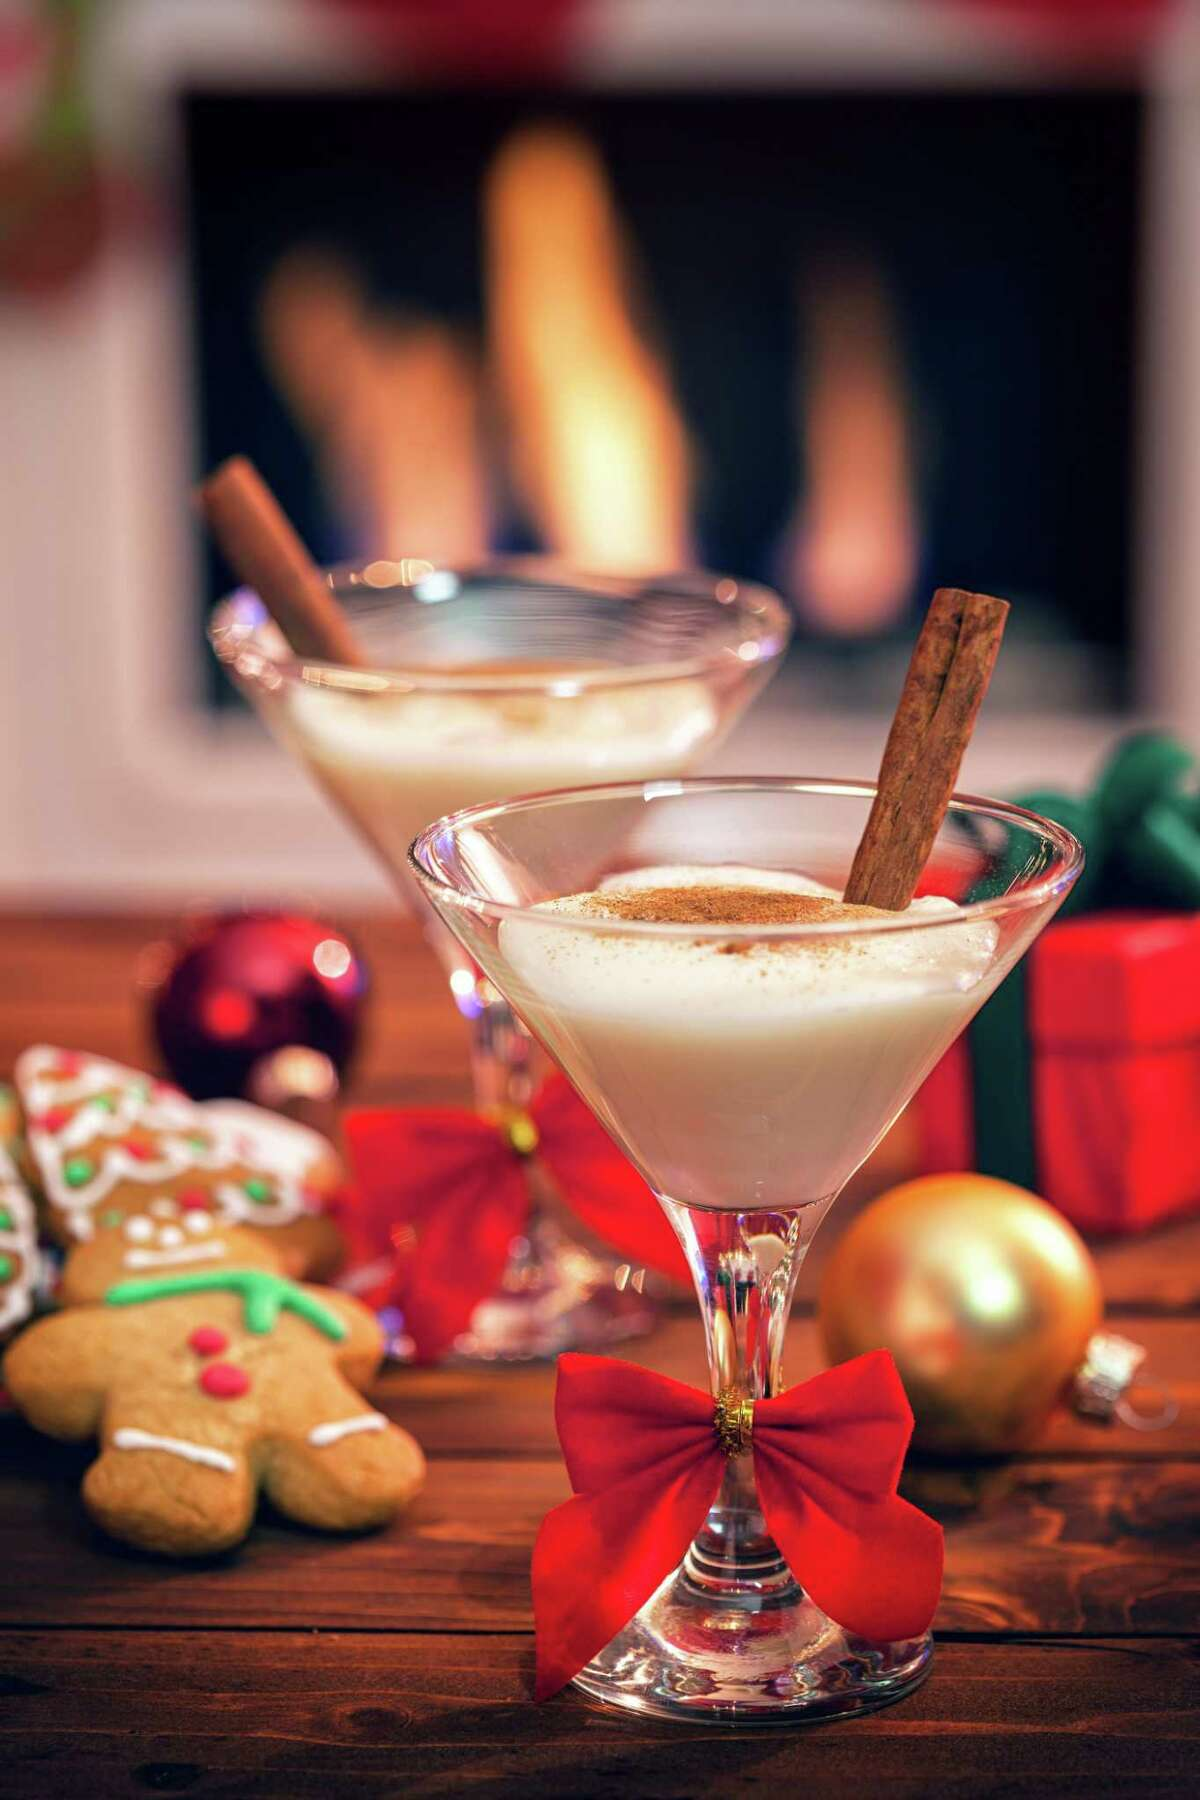 Making eggnog at home can be as simple as mixing spirits into your favorite vanilla ice cream.